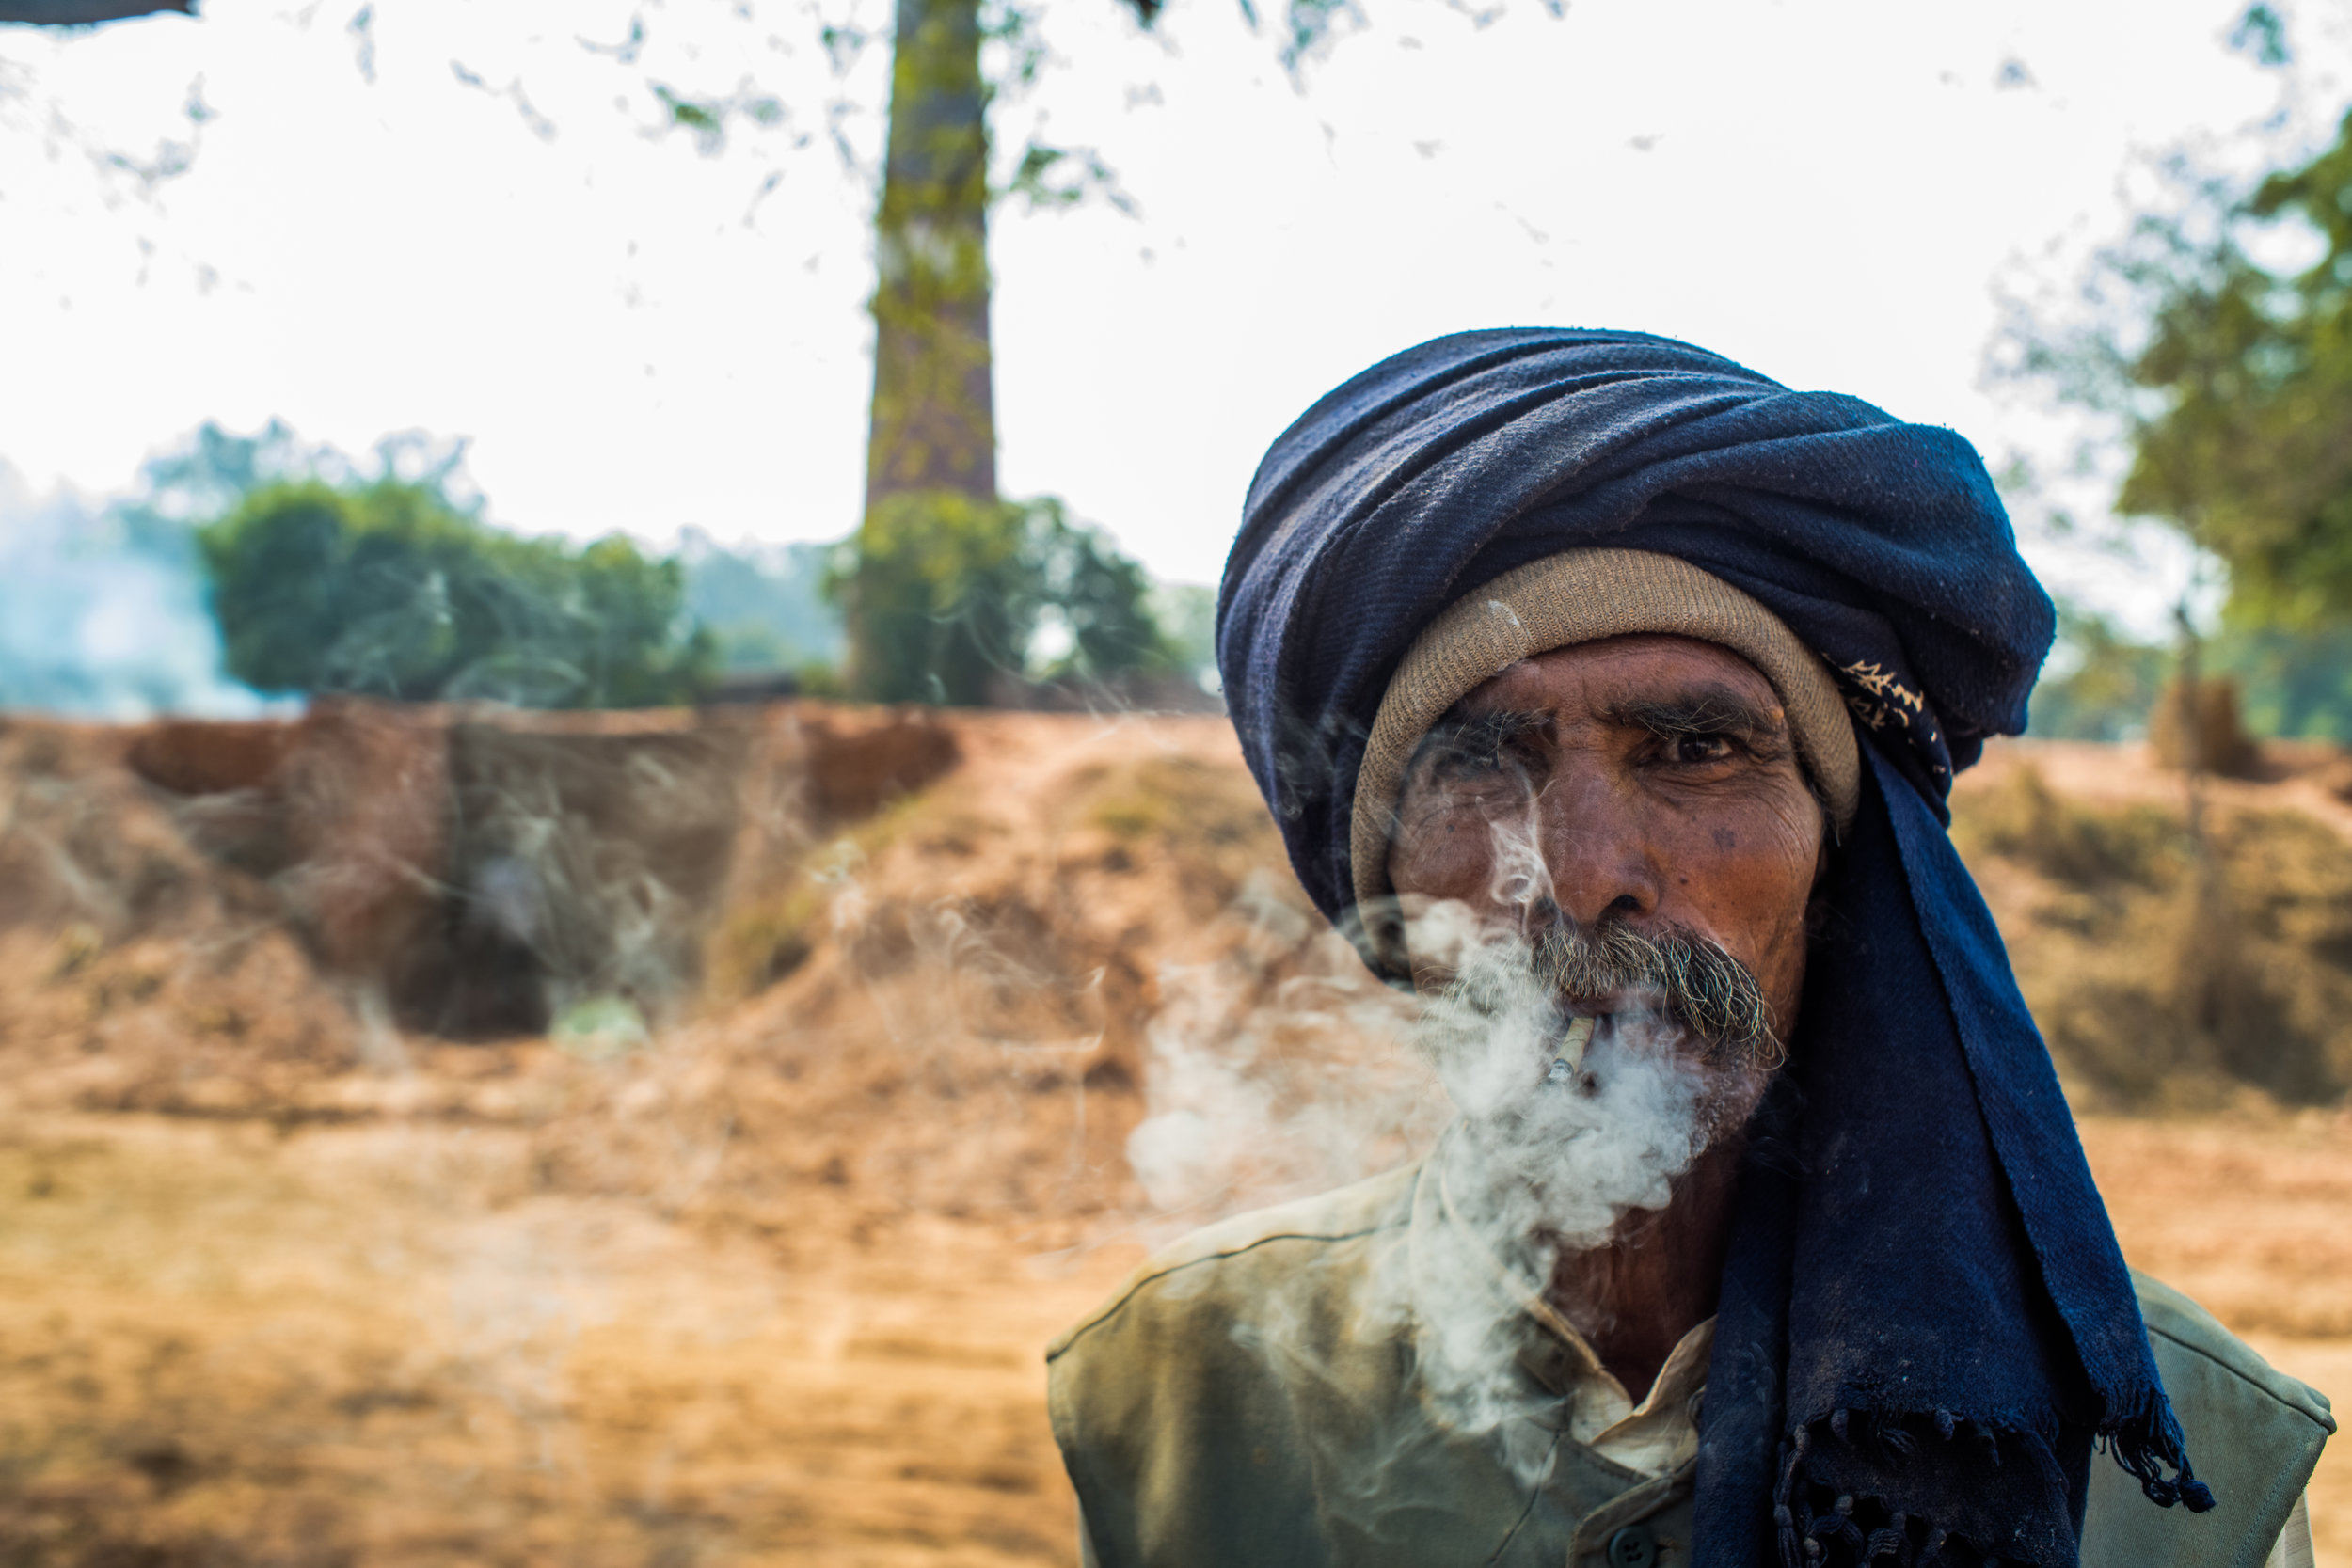 A man takes a break from working at a brick kiln outside of New Delhi, India.